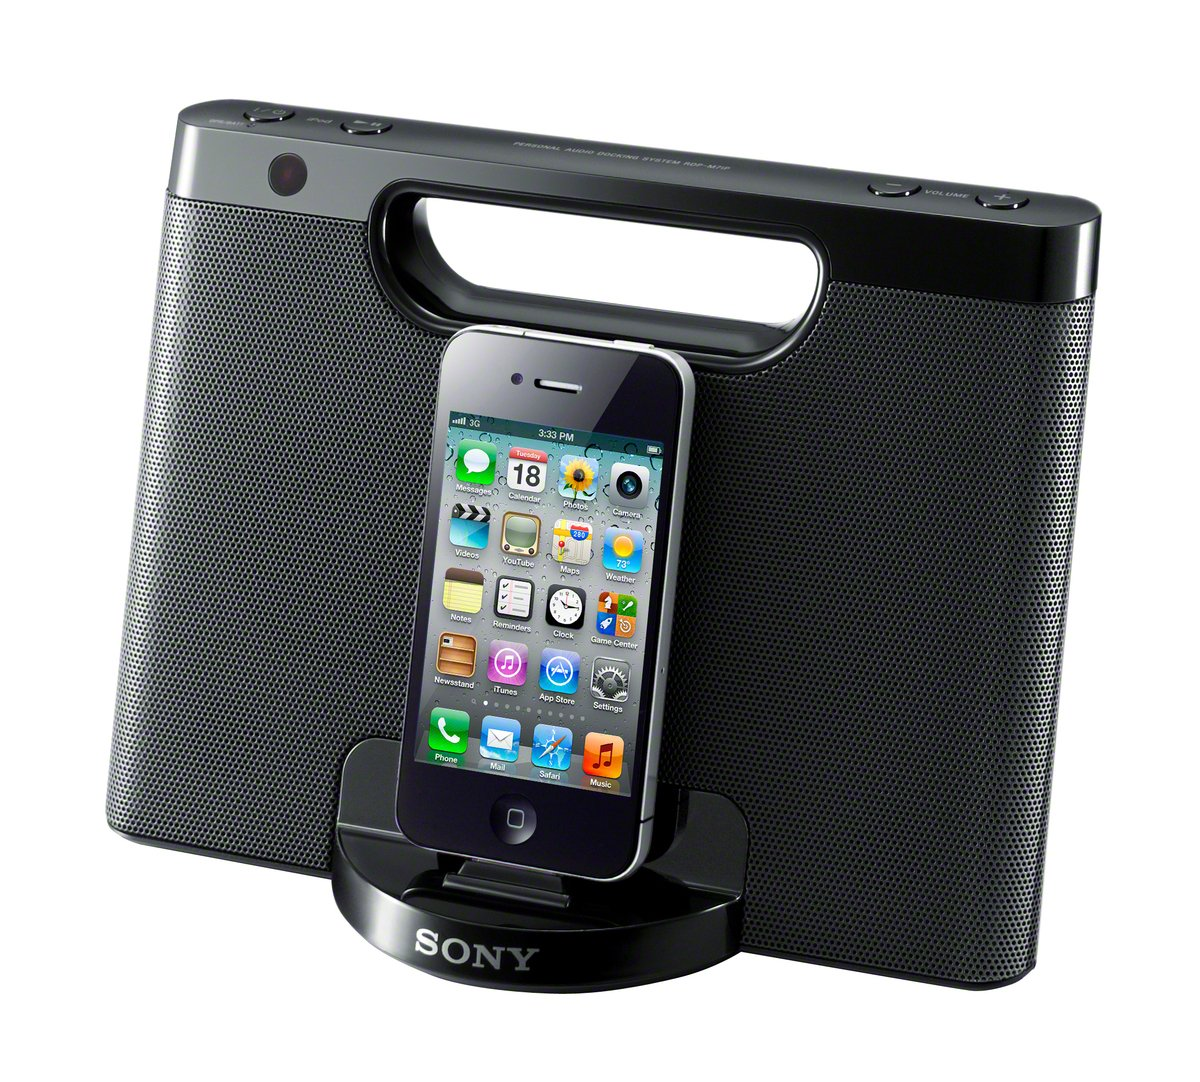 Sony RDPM7IP 30-Pin iPhone/iPod Portable Speaker Dock (Black) (Discontinued by Manufacturer) by Sony (Image #1)